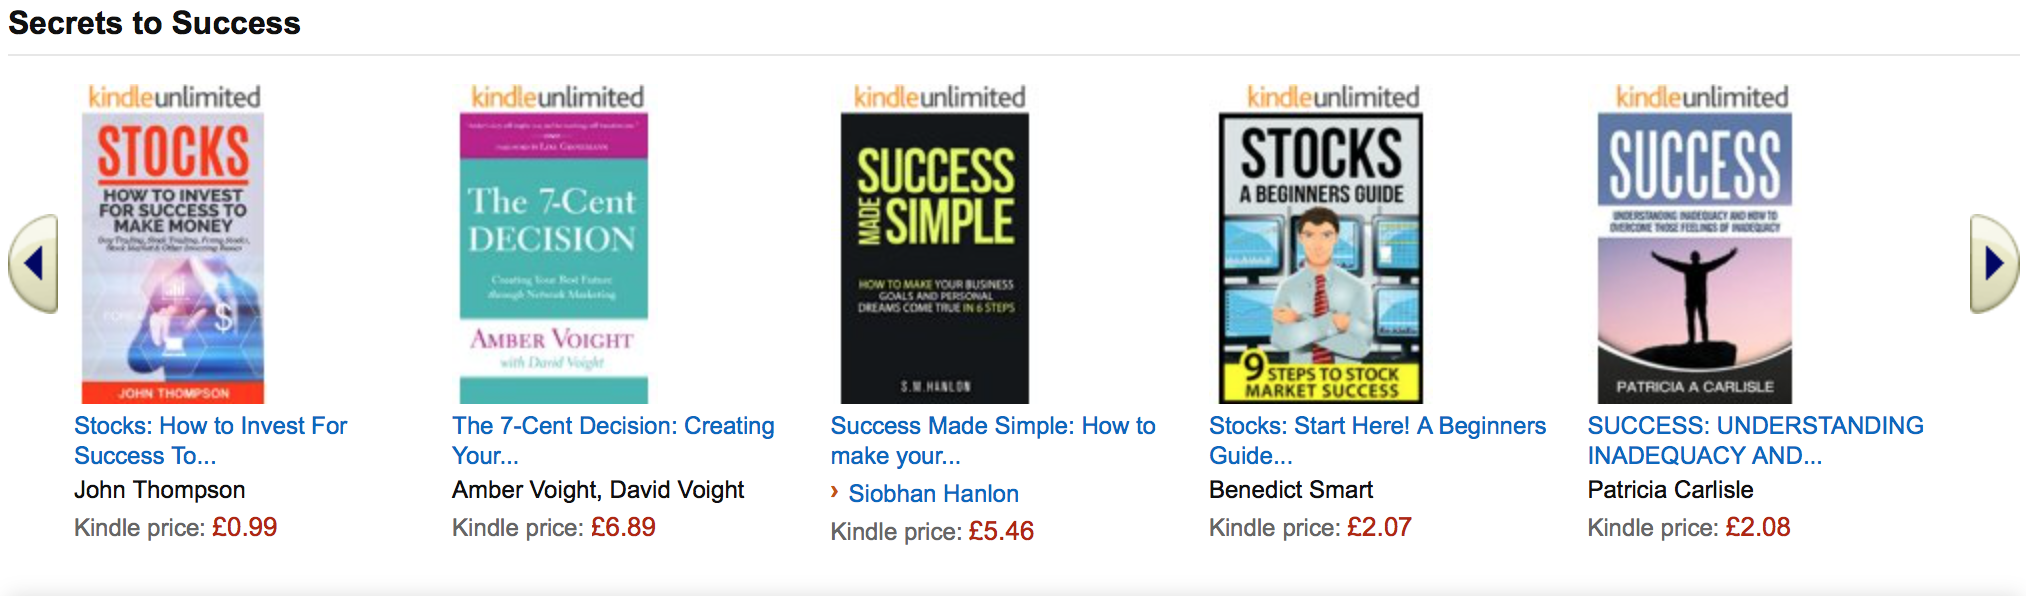 How to Build Your Marketing List Through the Amazon Kindle